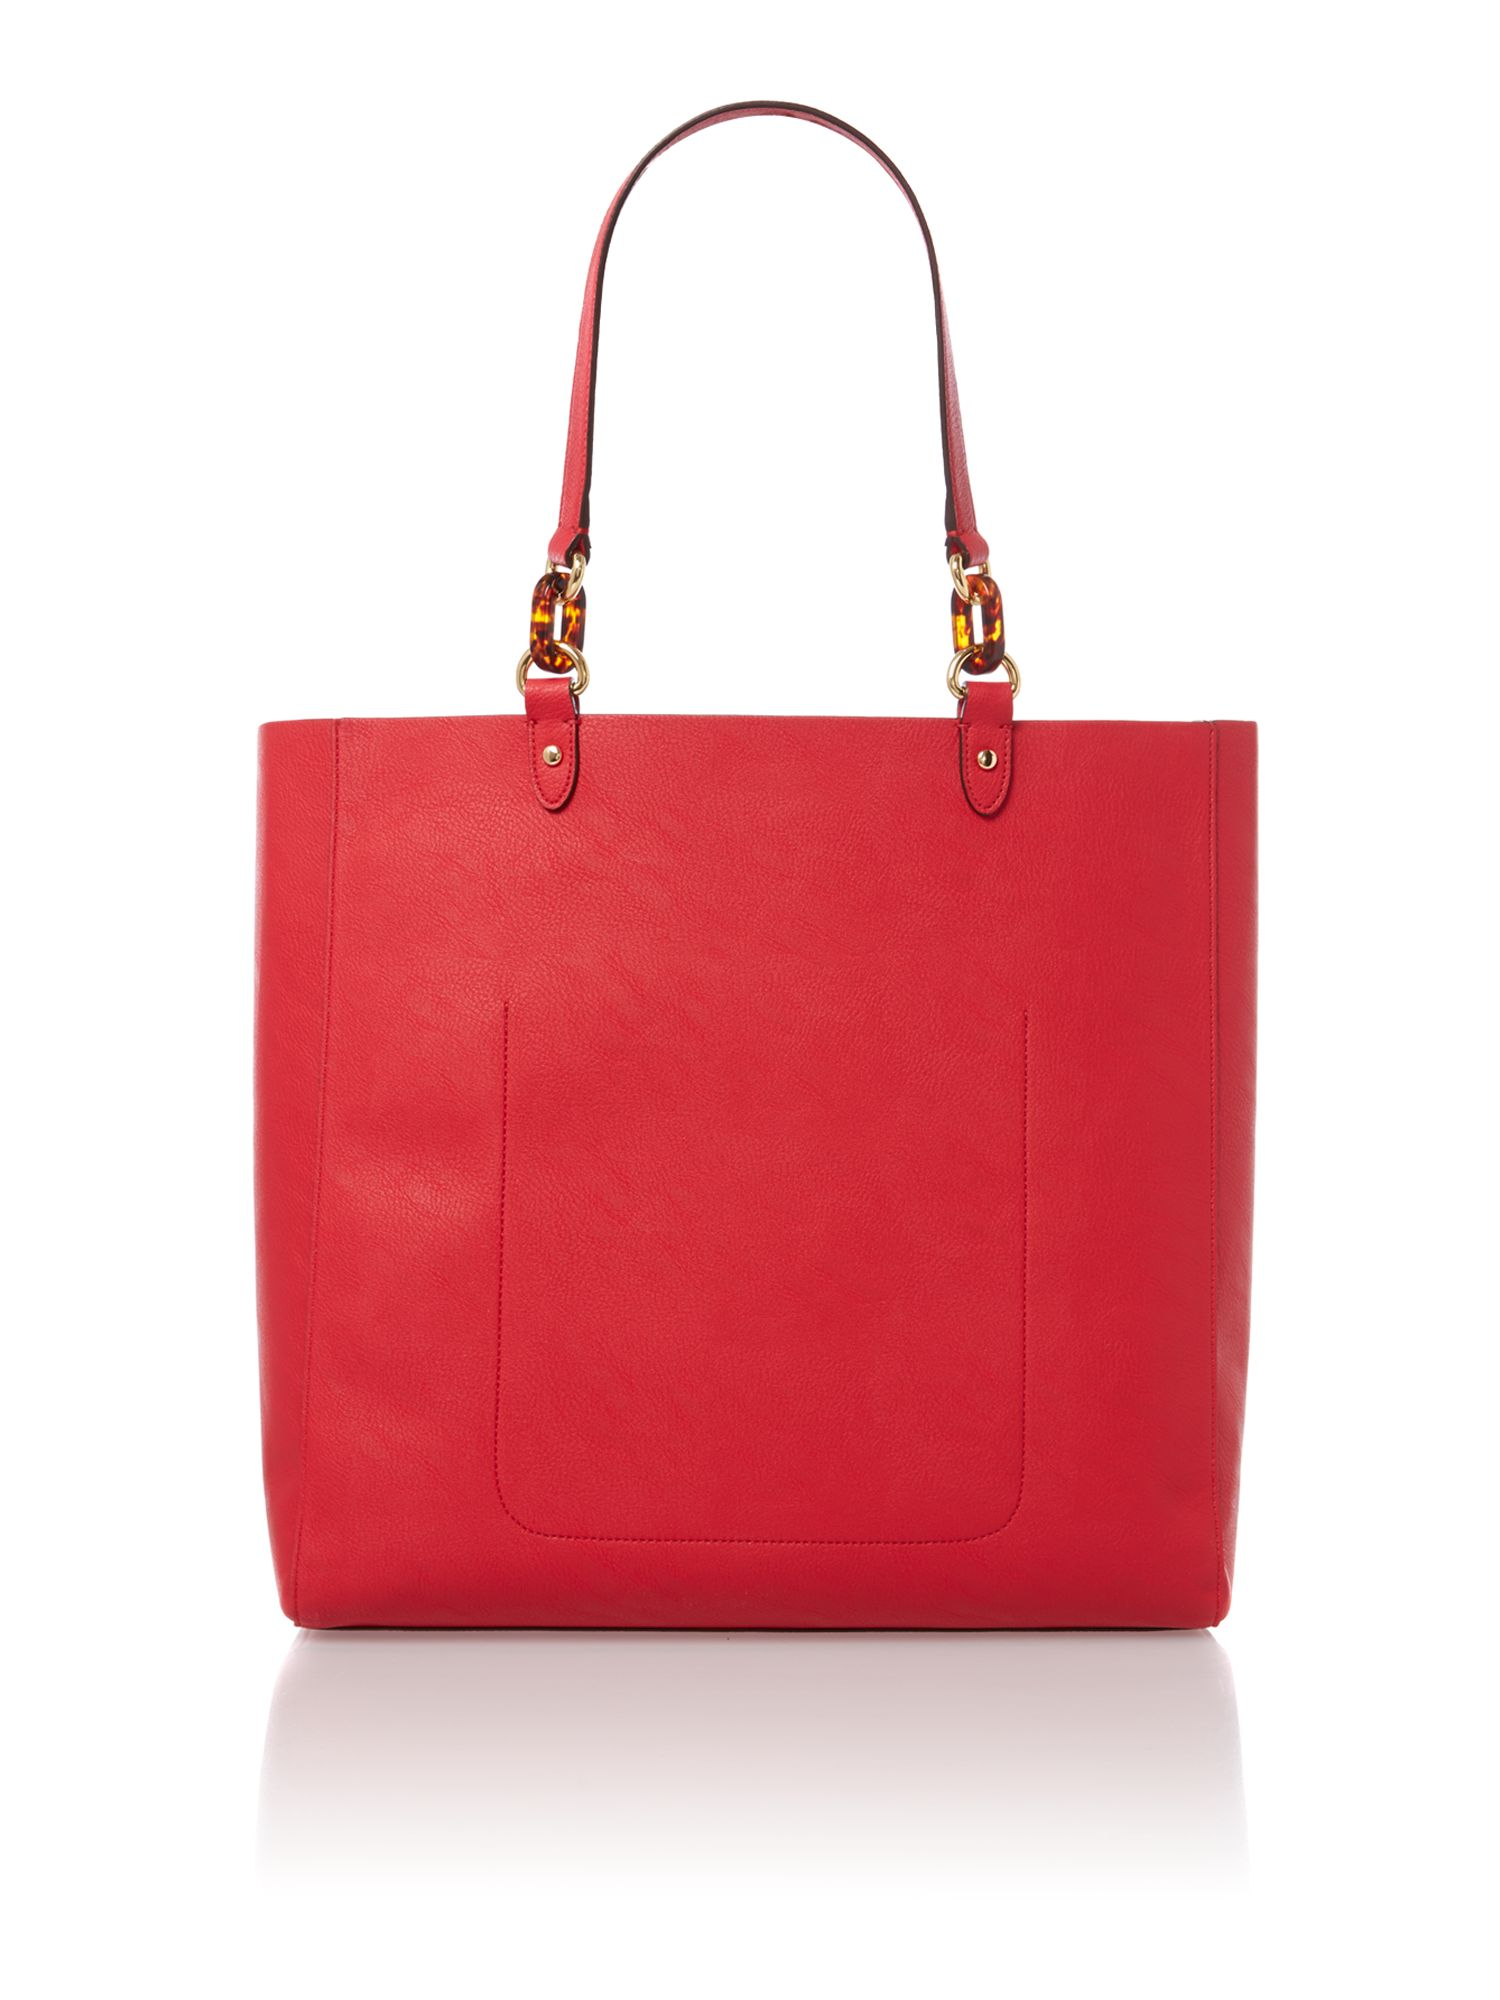 Bembridge red tote bag